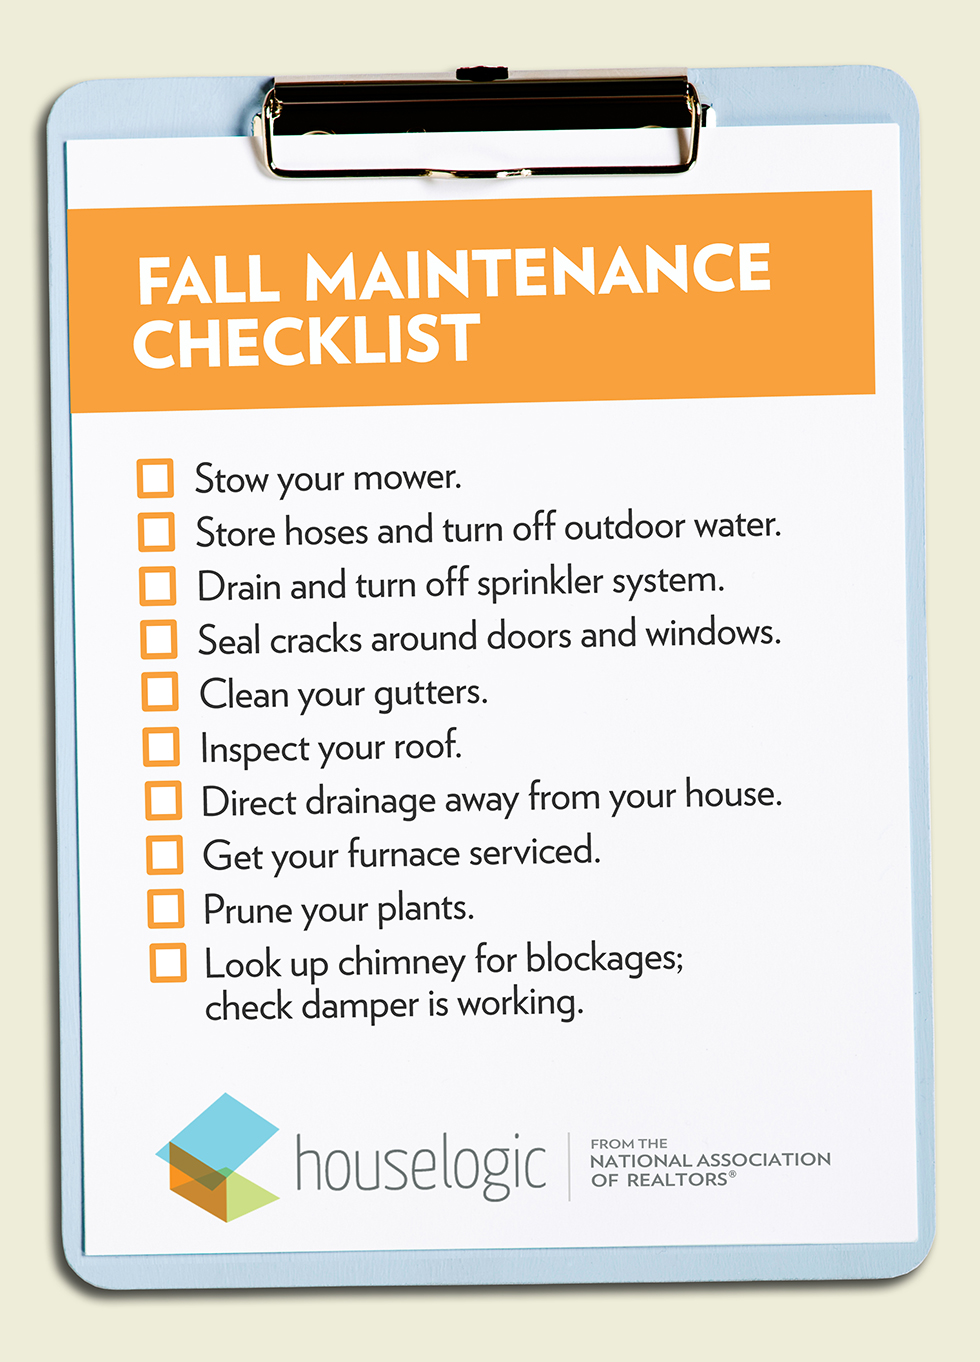 Fall Home Maintenance Checklist To Get Your Home Ready For Winter